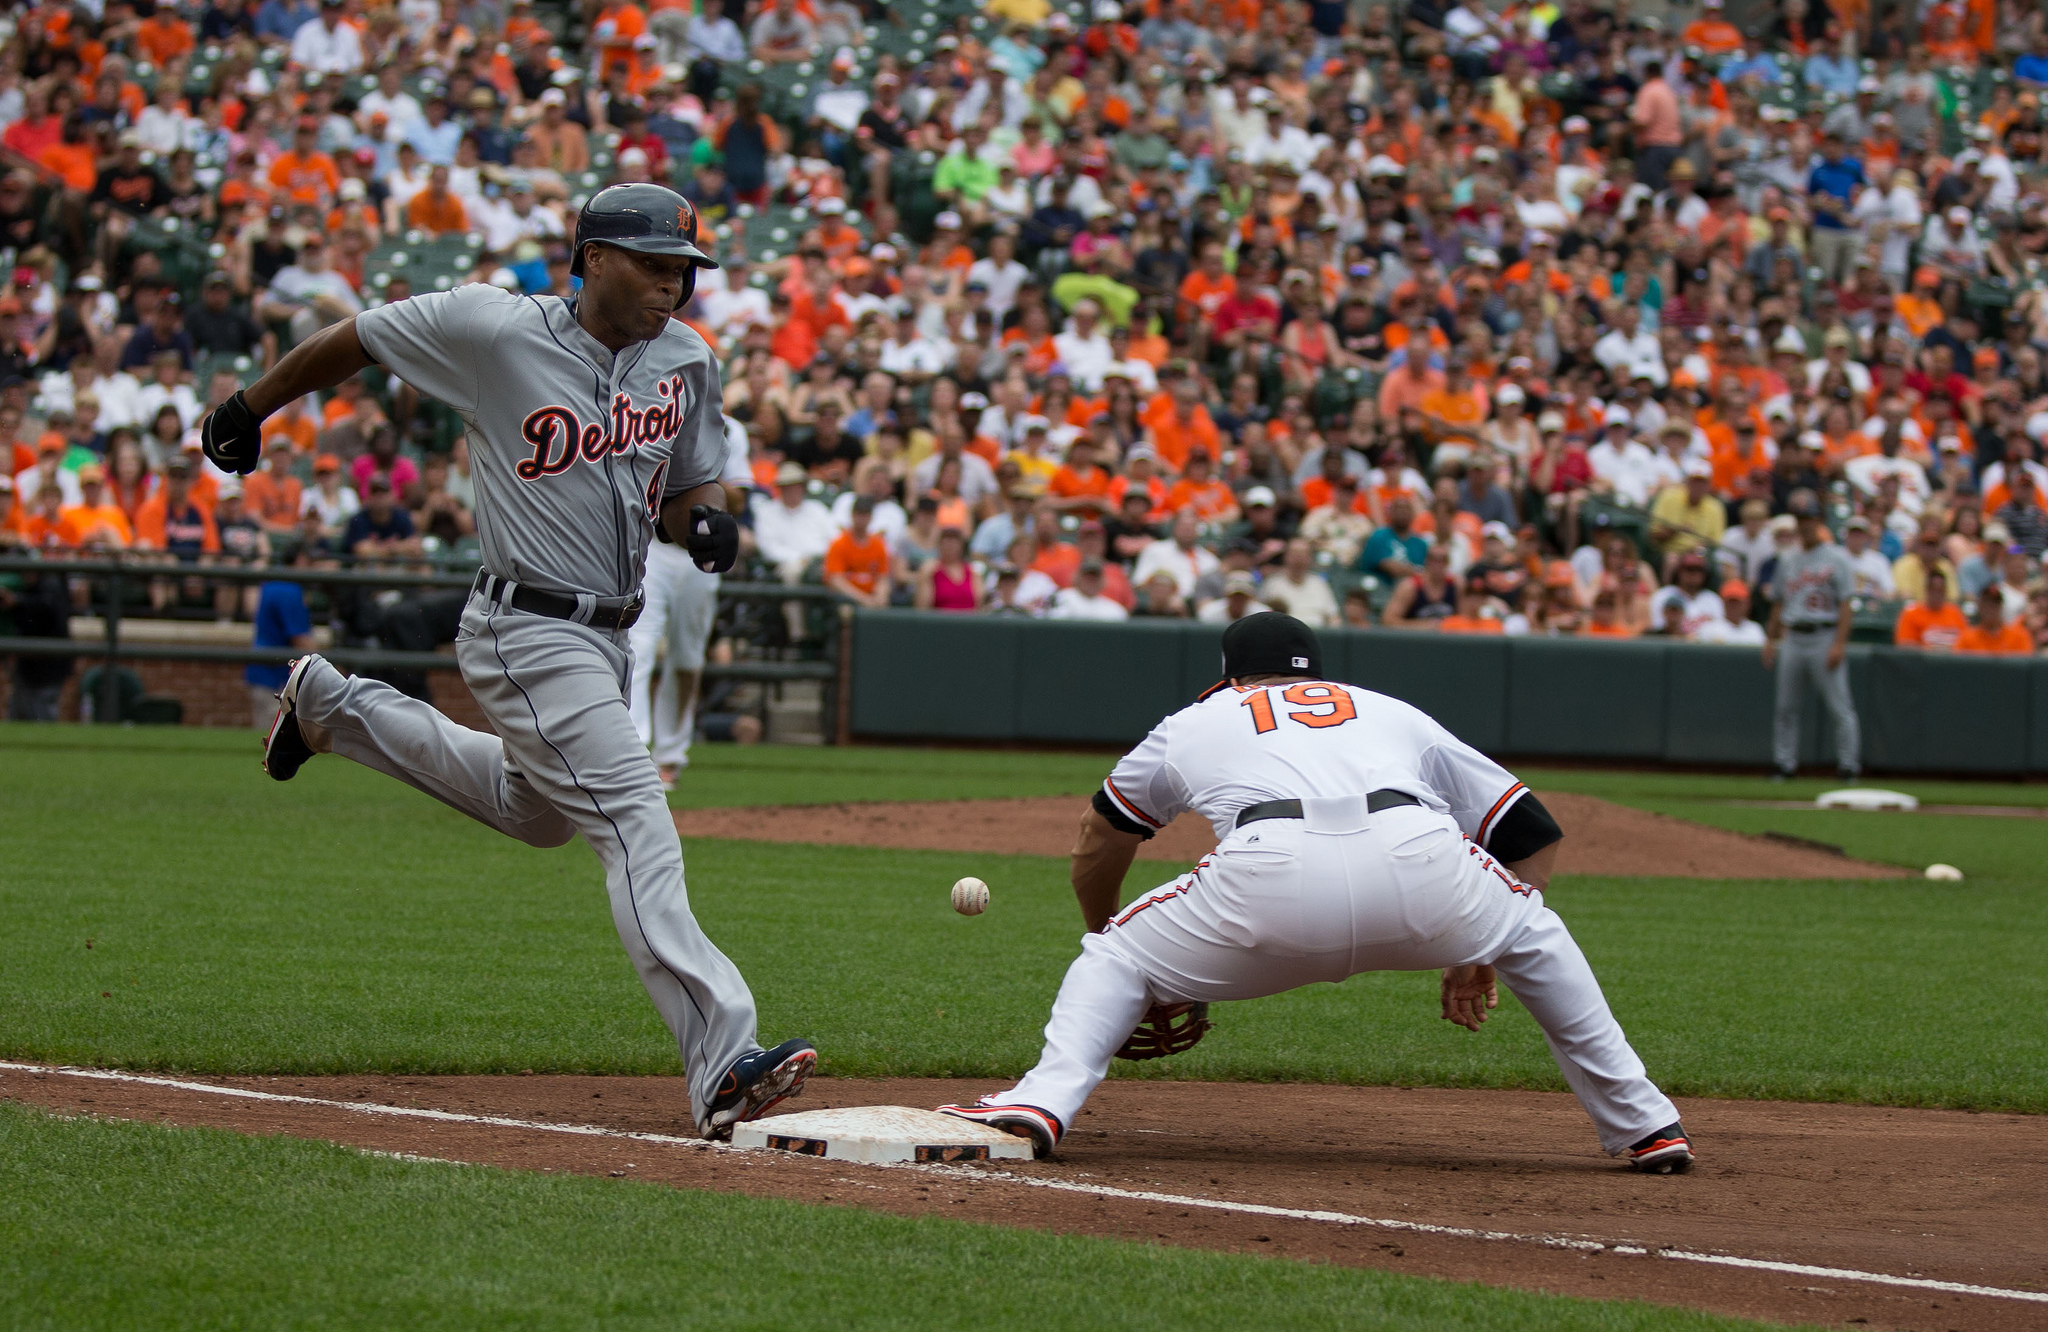 """Torii Hunter, Chris Davis"" by Keith Allison is licensed under CC 2.0."